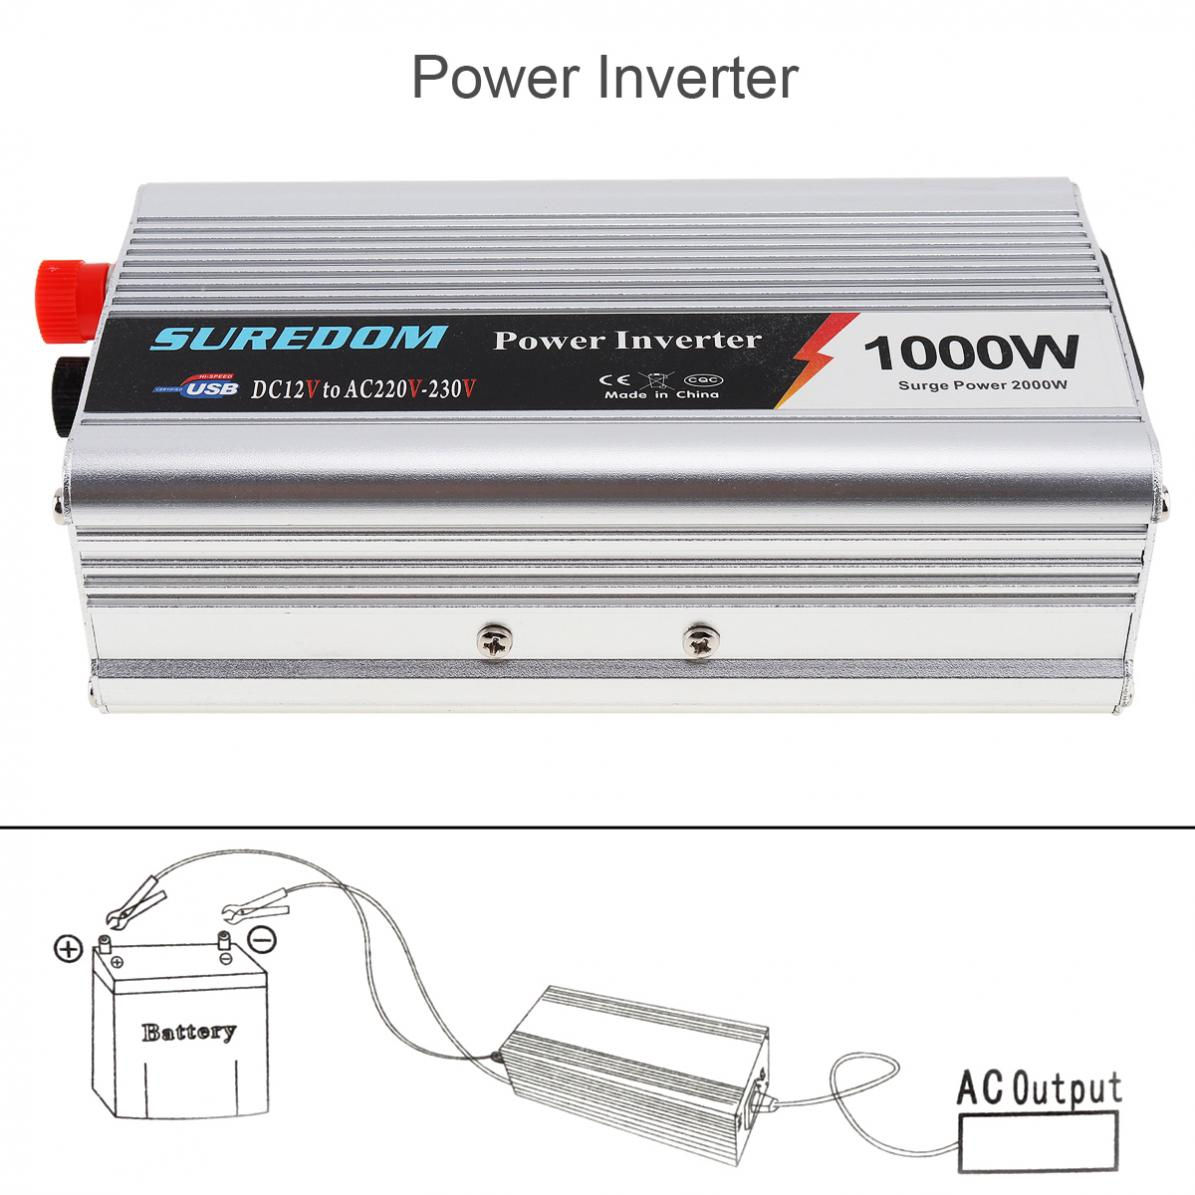 1000W Car Inverter DC 12V 24V to AC 220V 110V USB Auto Power Inverter Adapter Charger Voltage Converter Peak Power 2000W catuo 1500 watt dc 12v to ac 220v power inverter charger converter 1000w dc 24 to ac 220 car charger adapter drop shipping